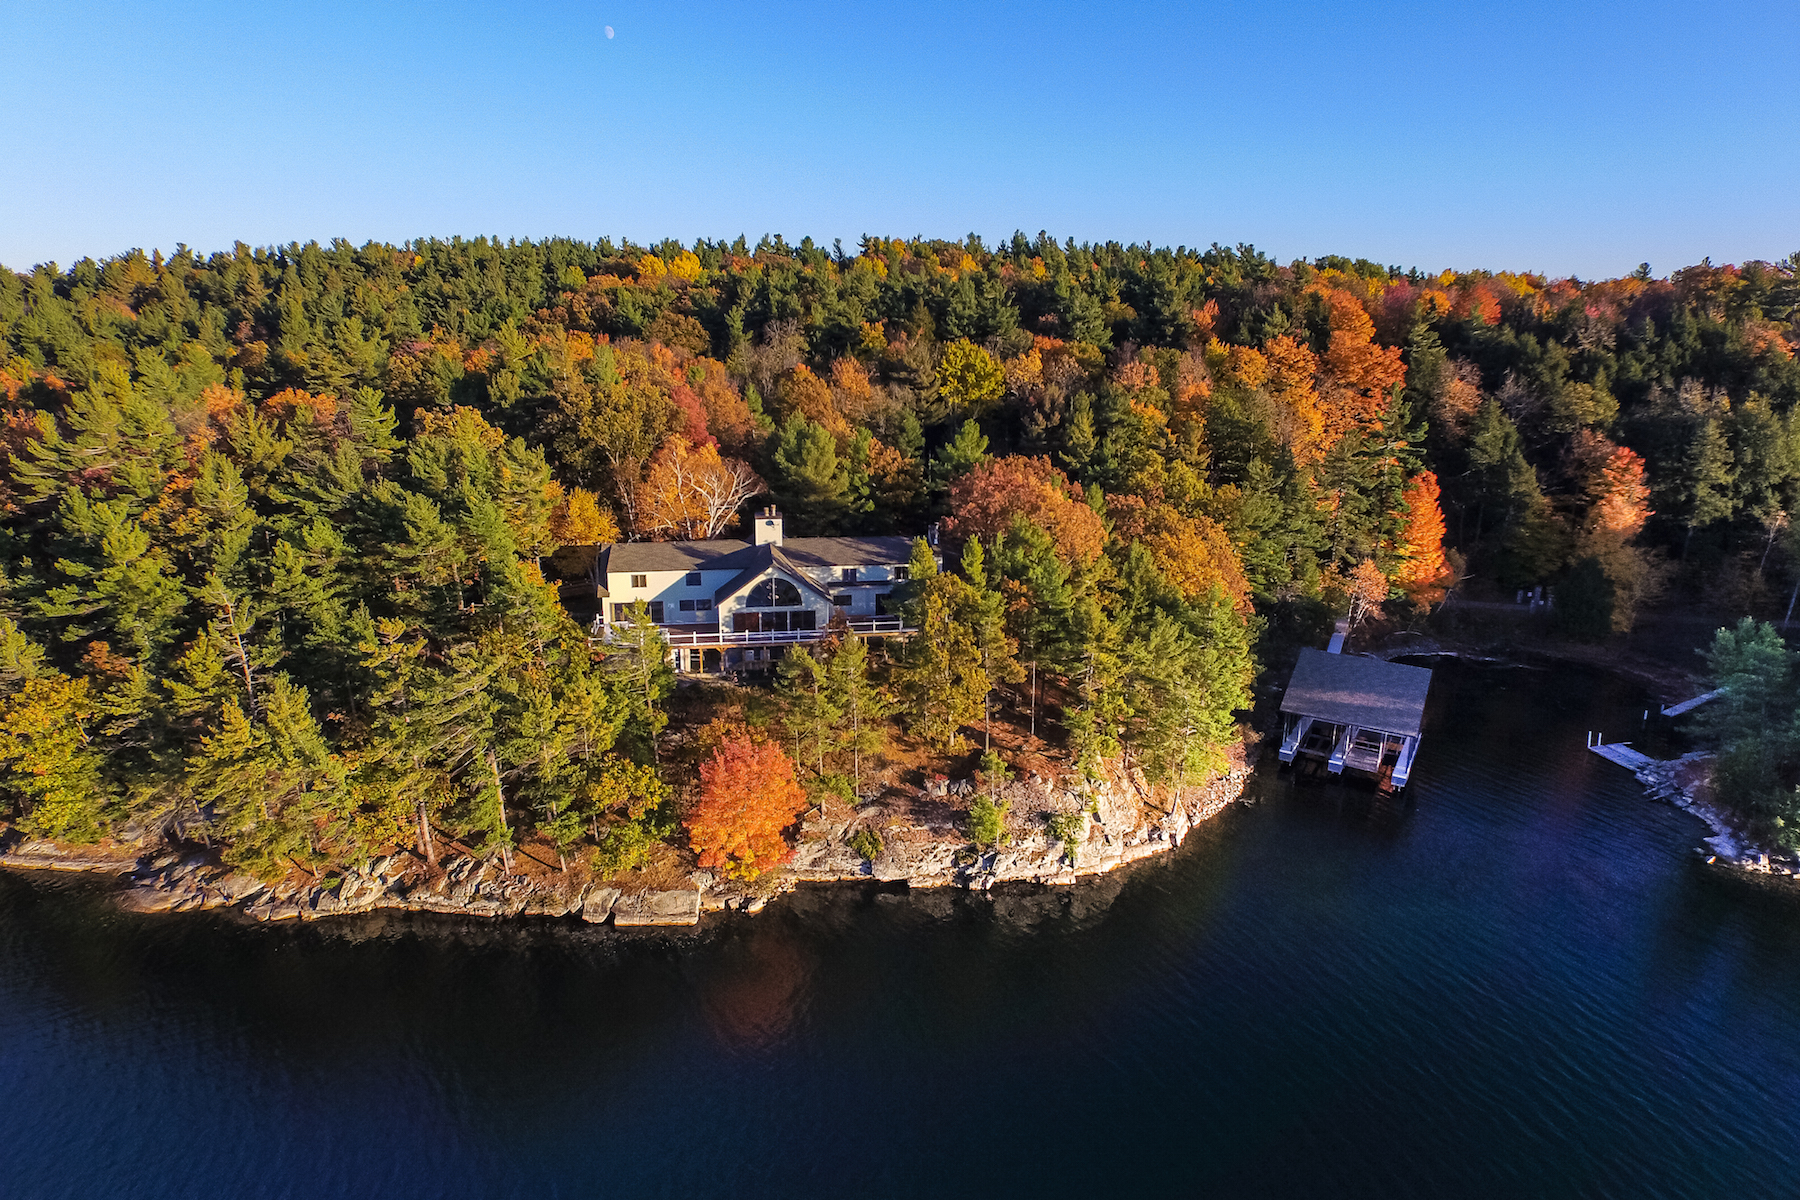 Maison unifamiliale pour l Vente à Majestic Home on St. Lawrence River 19289 Rock Baie Road Wellesley Island, New York 13640 États-Unis